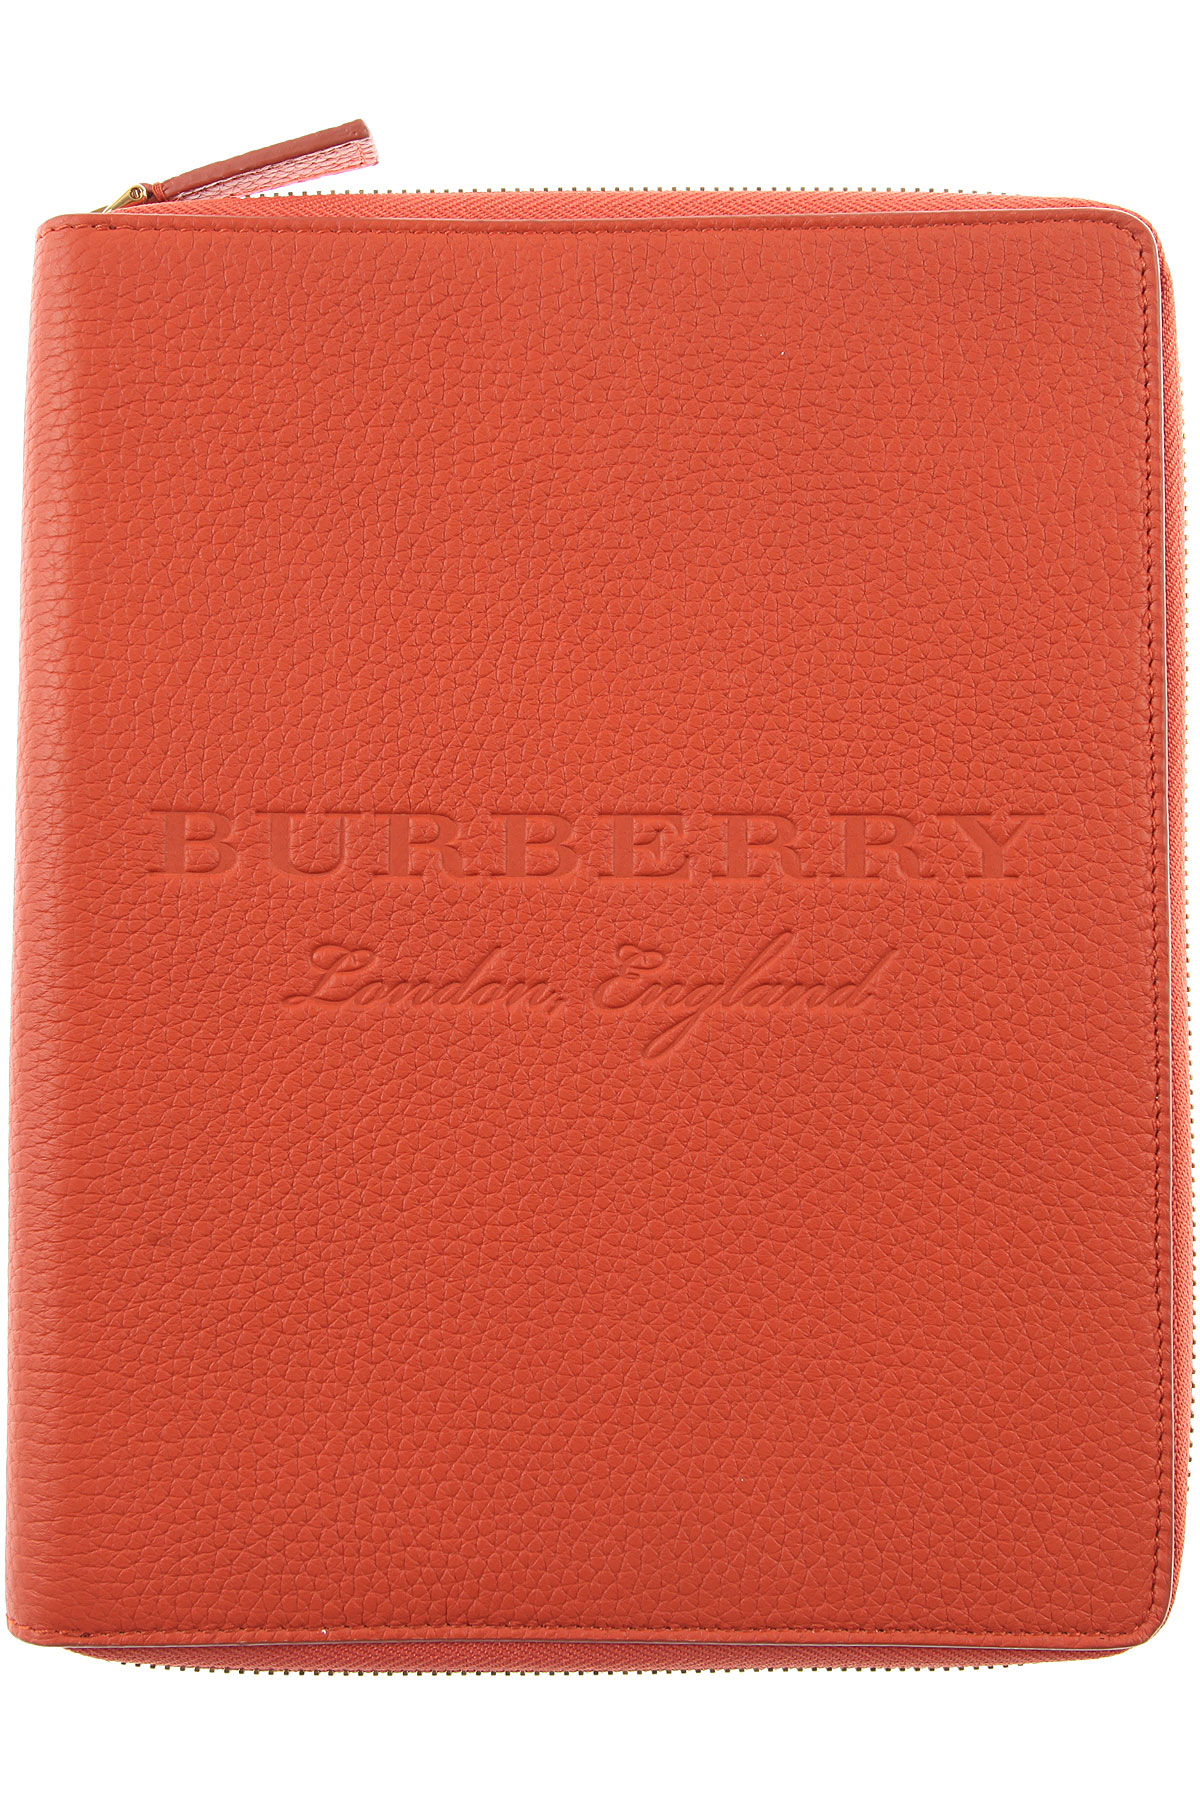 Image of Burberry Mens Wallets, Orange, Leather, 2017